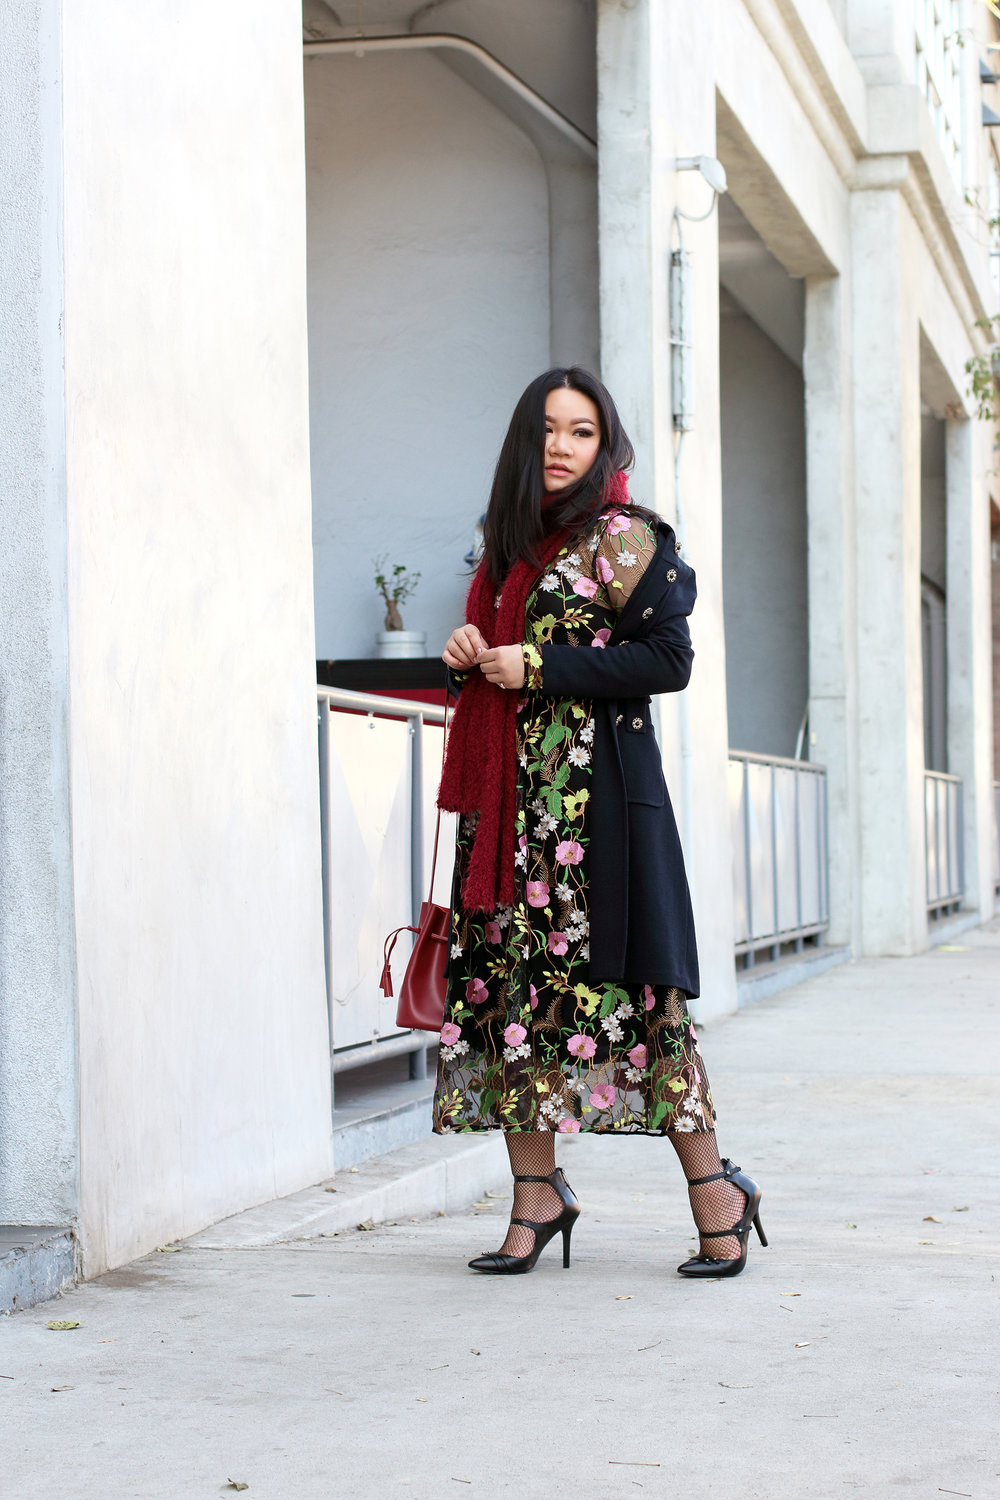 #S1HolidaySeries: Floral Embroidered Holiday Look -